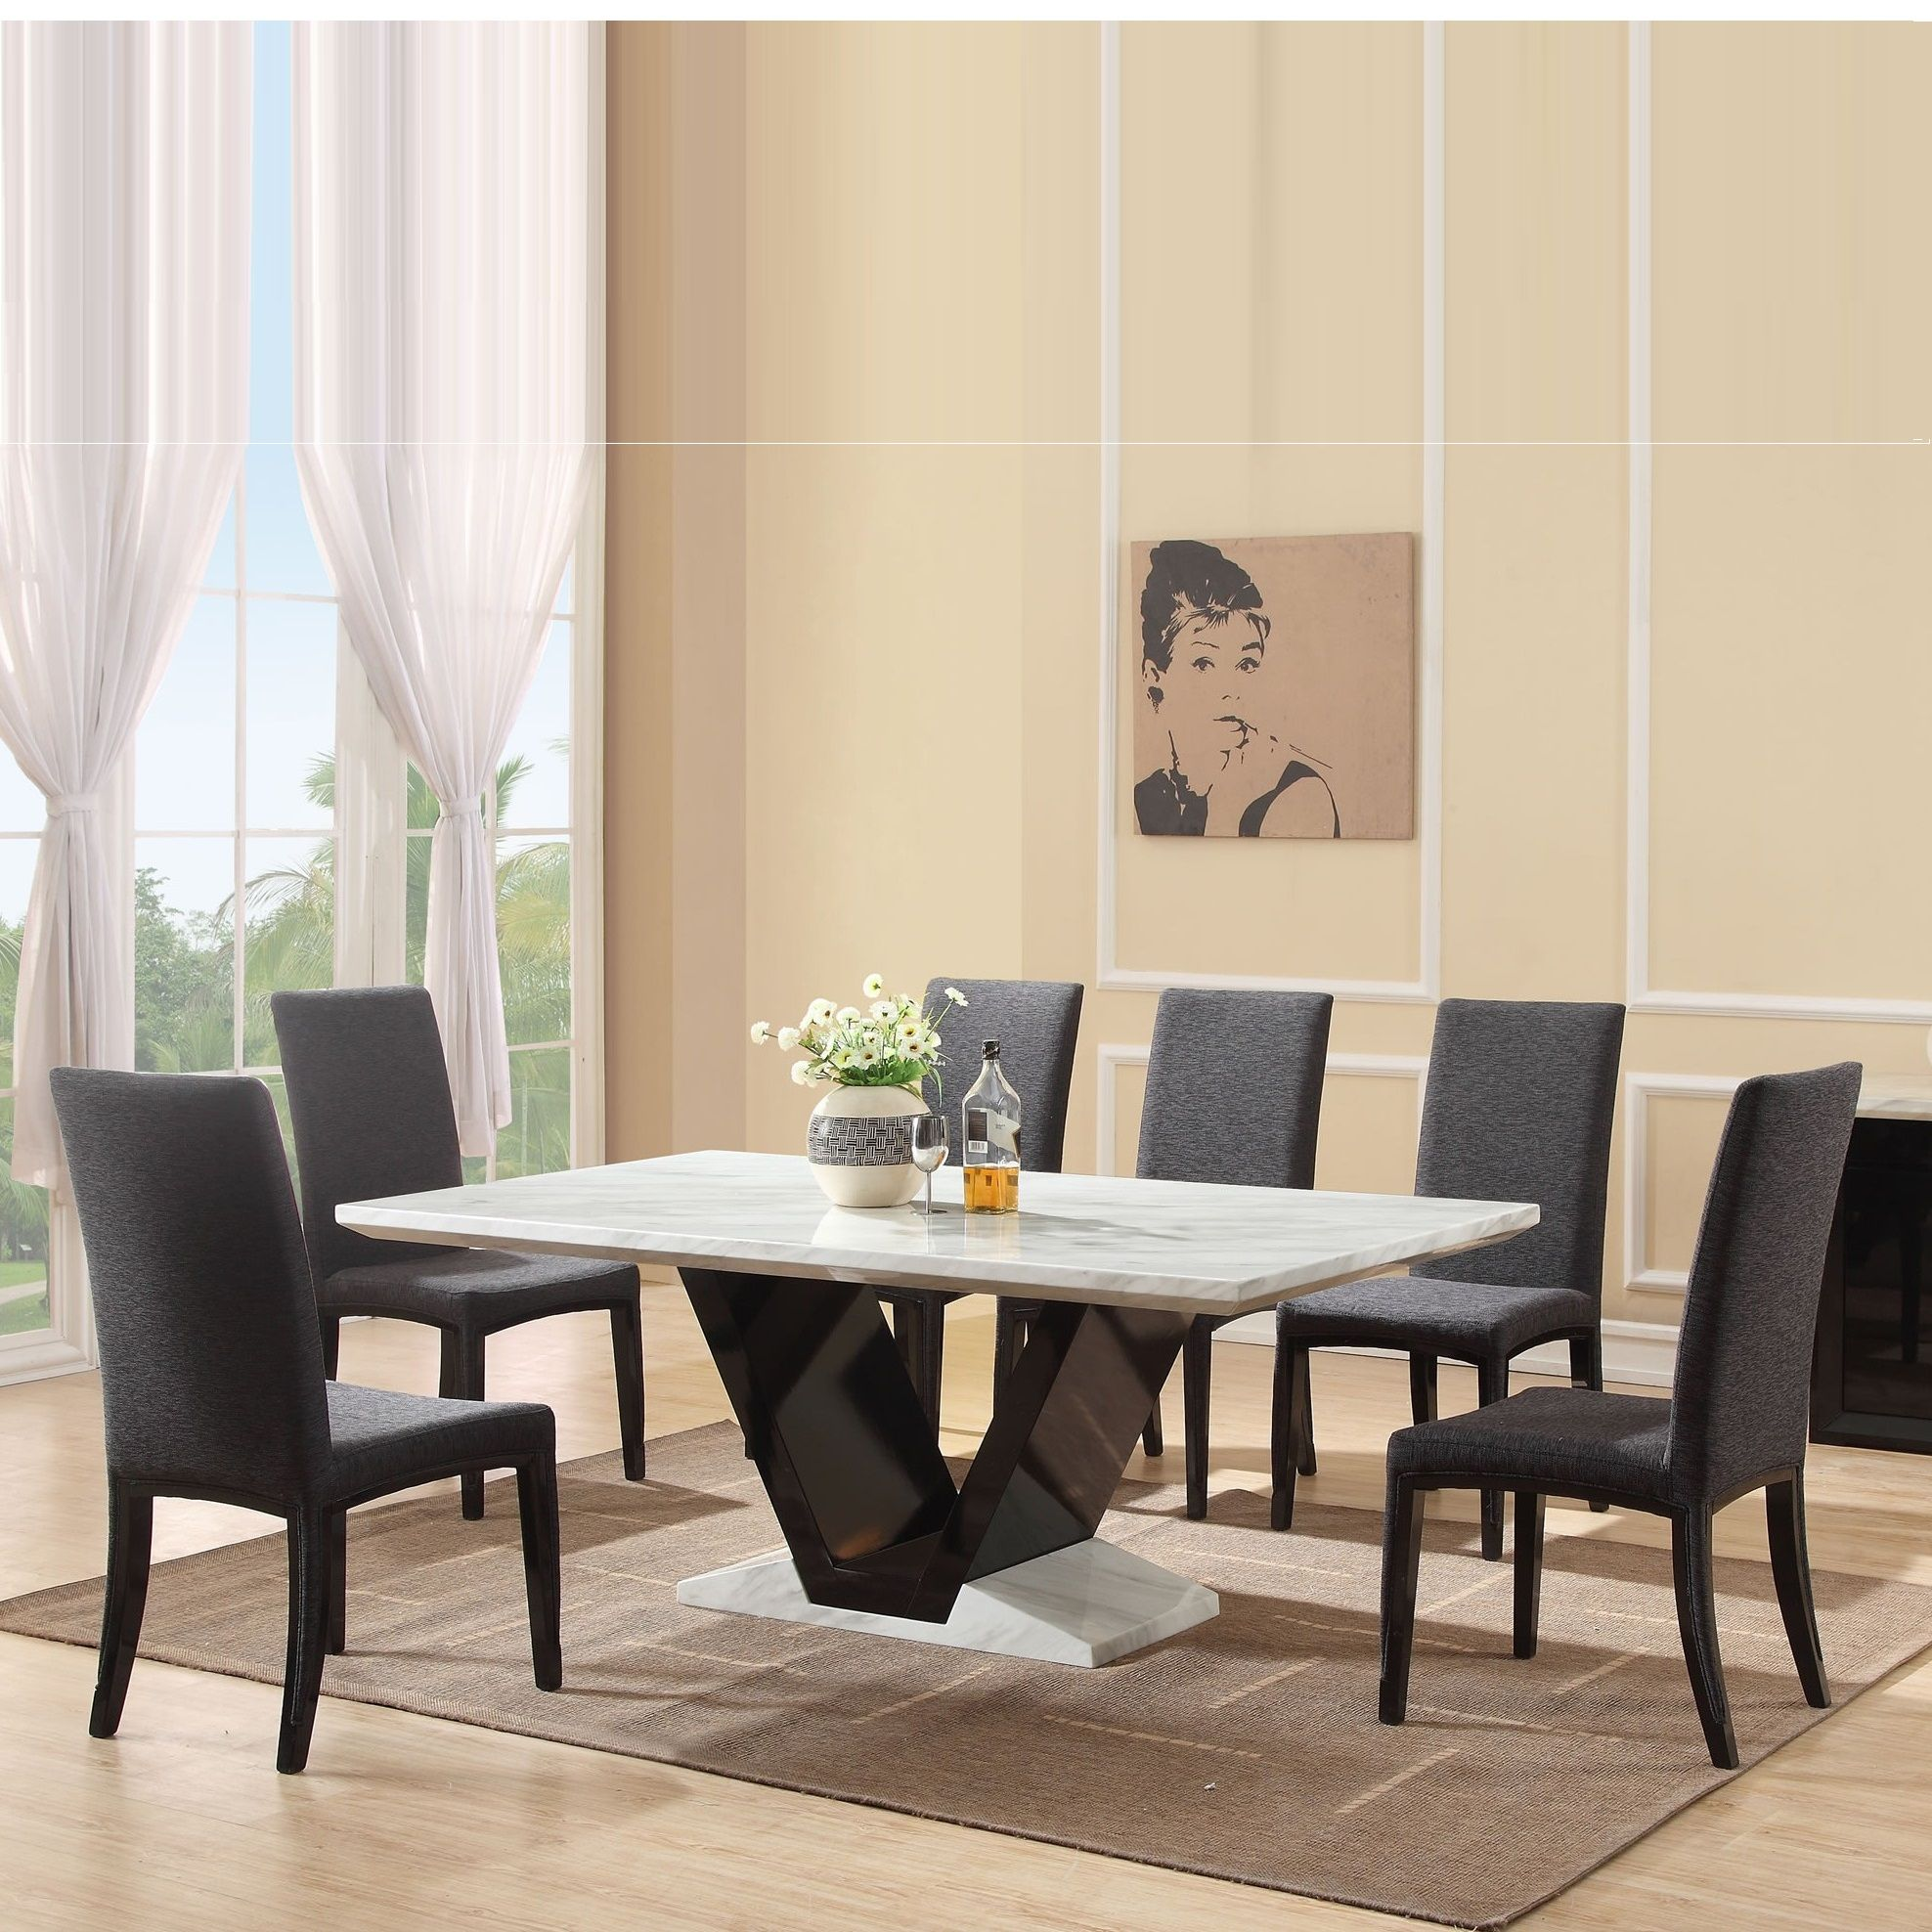 Download Wallpaper White Dining Tables Ireland